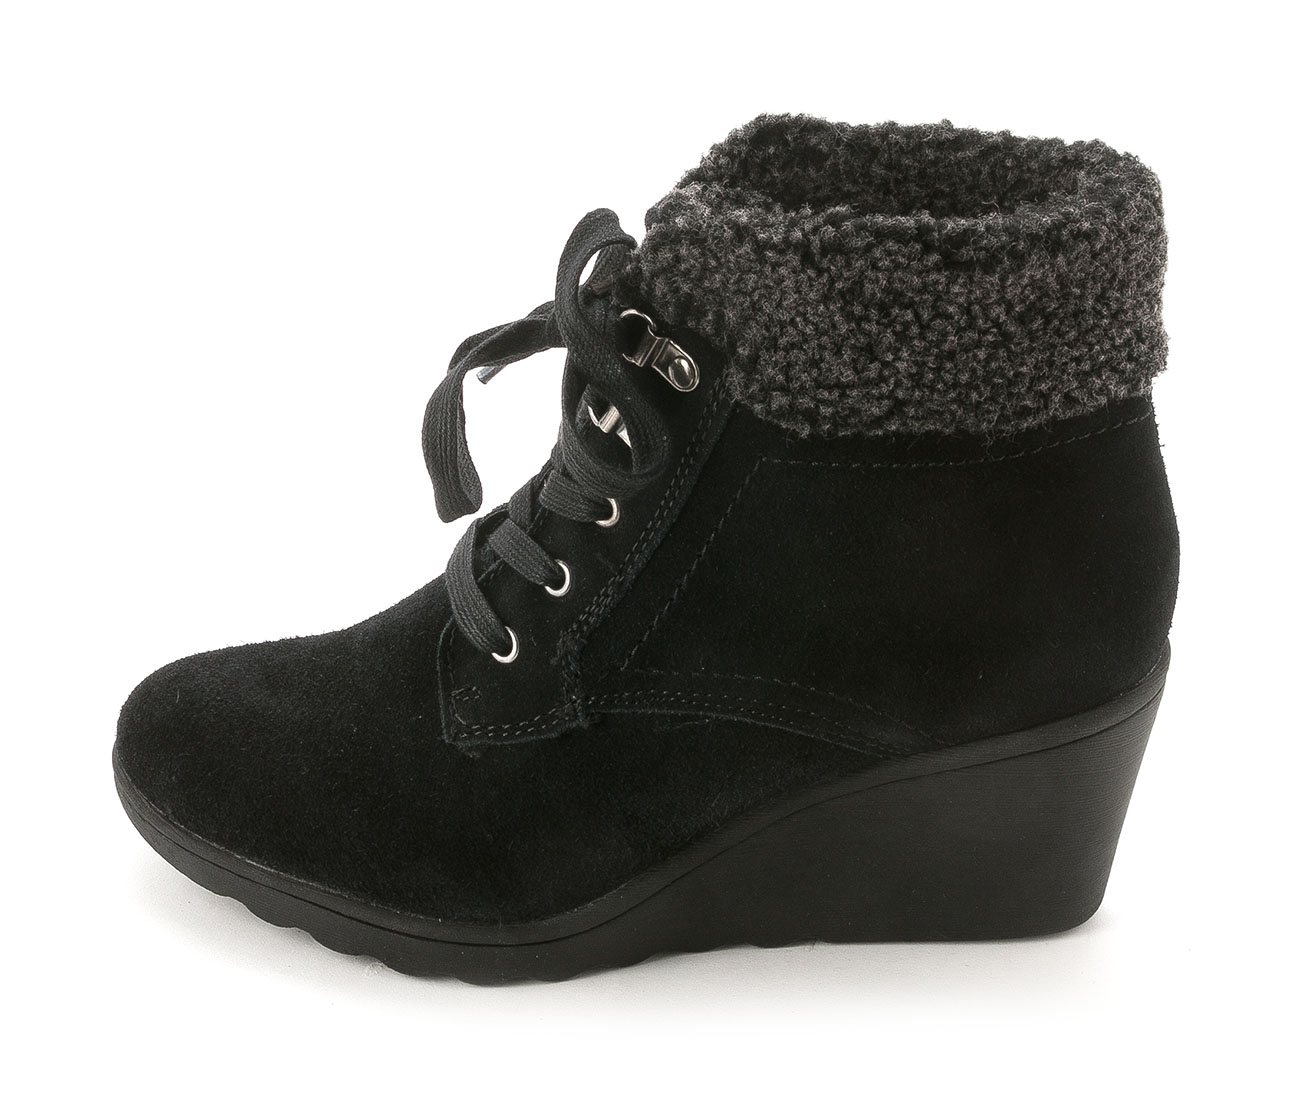 Womens Kipper Suede Closed Toe Ankle Fashion Boots